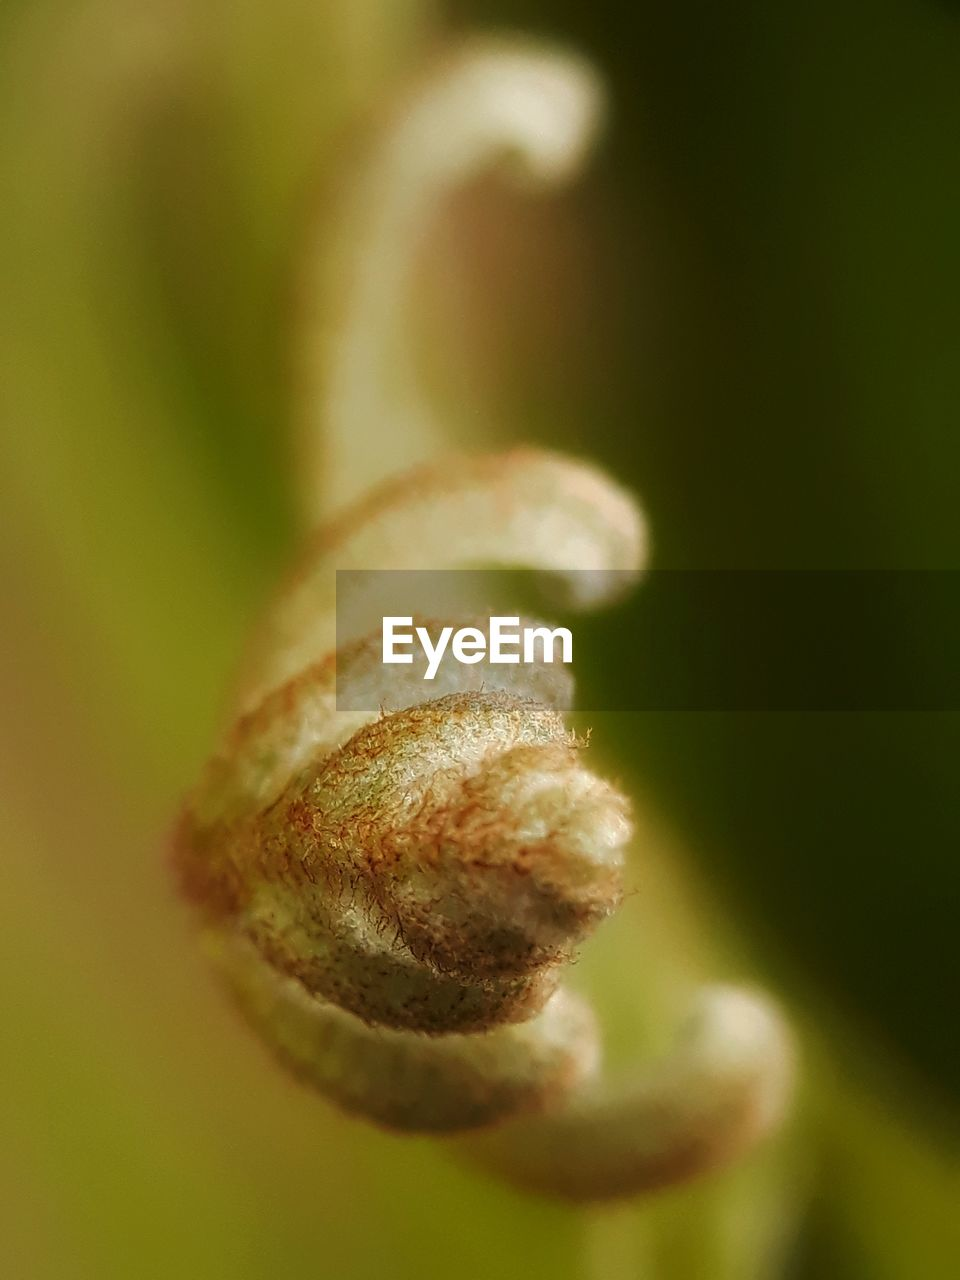 close-up, selective focus, growth, beauty in nature, no people, plant, vulnerability, nature, fragility, day, green color, beginnings, flower, focus on foreground, outdoors, freshness, spiral, tendril, plant stem, bud